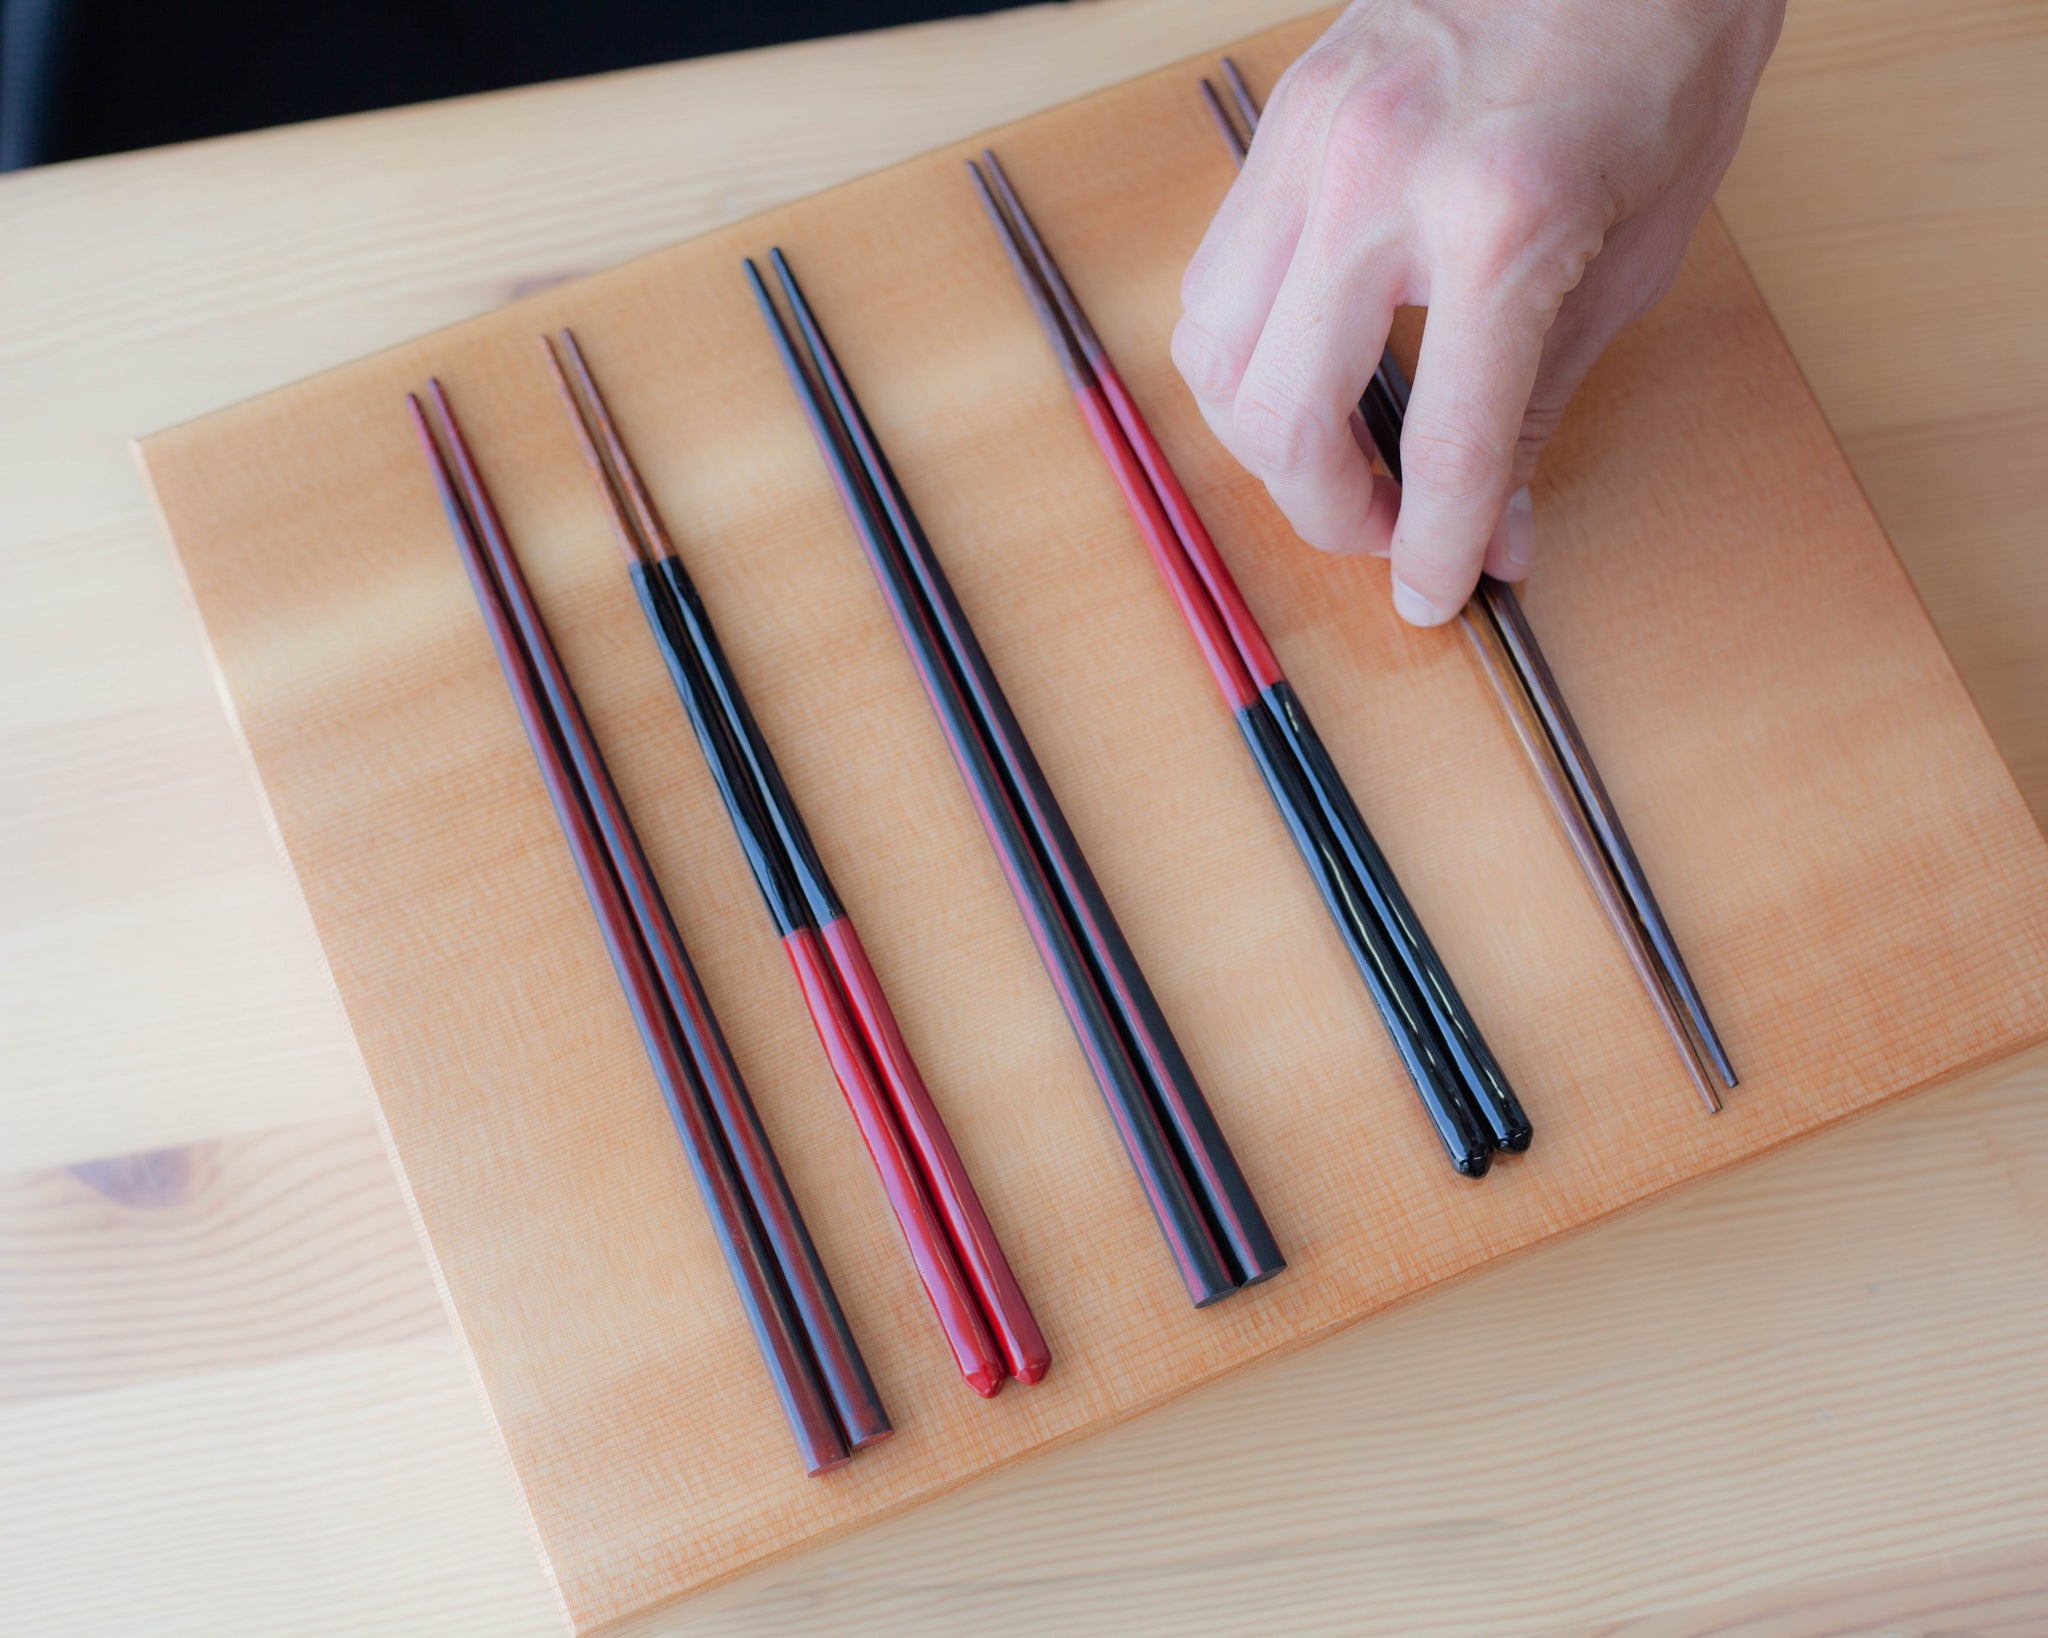 Artisan Square Chopsticks | Red by Style of Japan - Bento&co Japanese Bento Lunch Boxes and Kitchenware Specialists